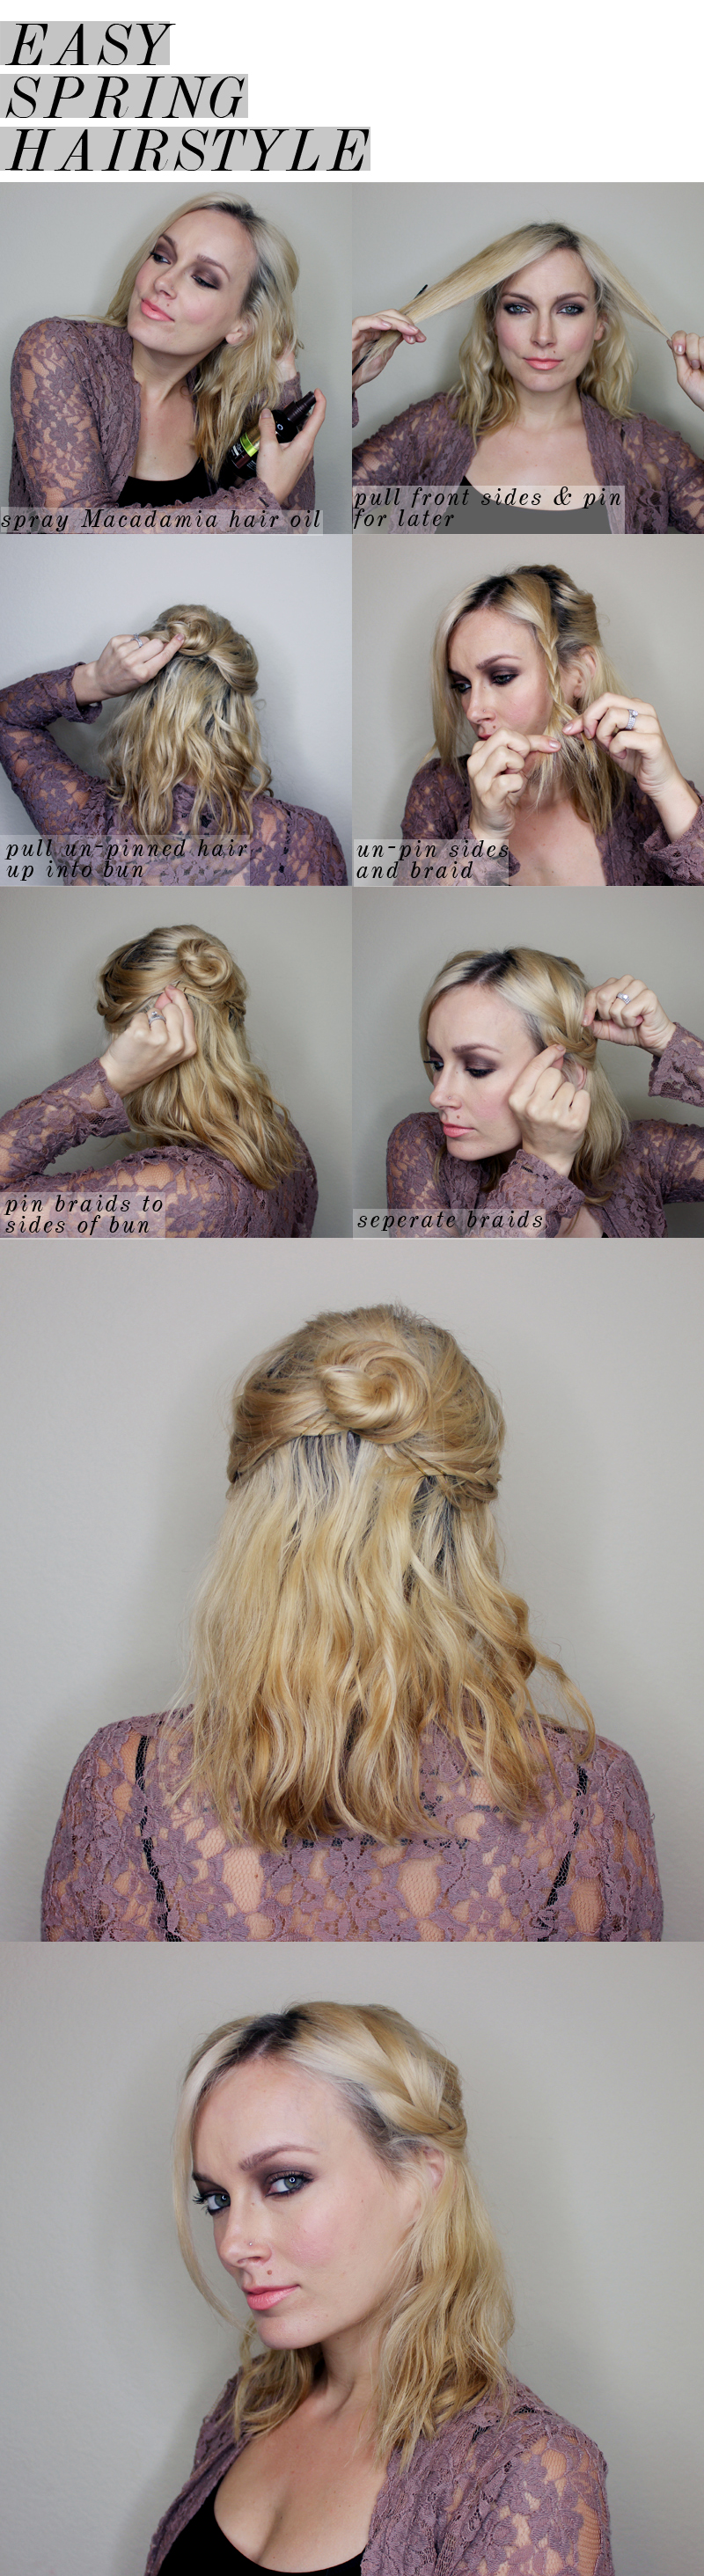 Easy Spring Half Updo For Medium Length Hair Citizens Of Beauty